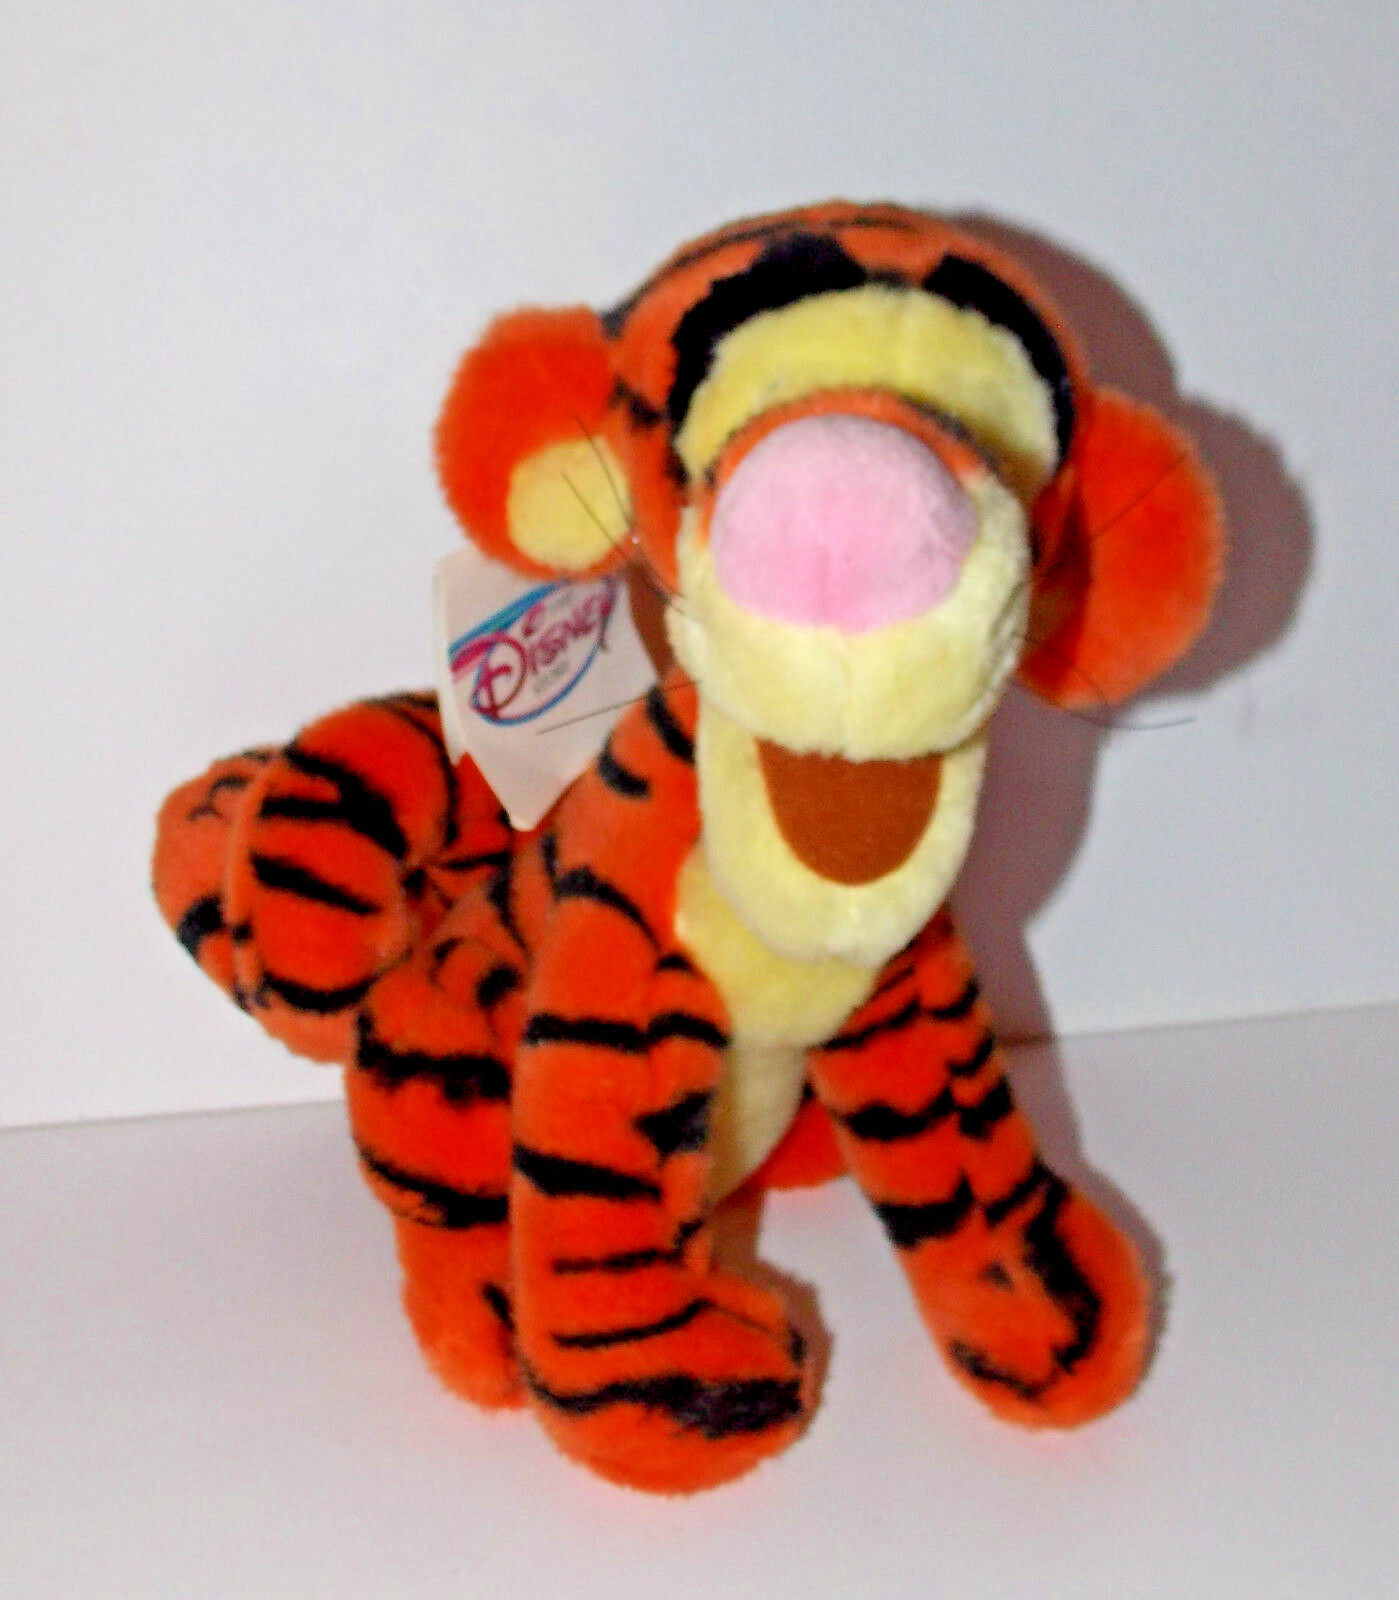 Primary image for Winnie the Pooh Tigger Plush 10in Disney Store Curly Tail Stuffed Animal Tiger